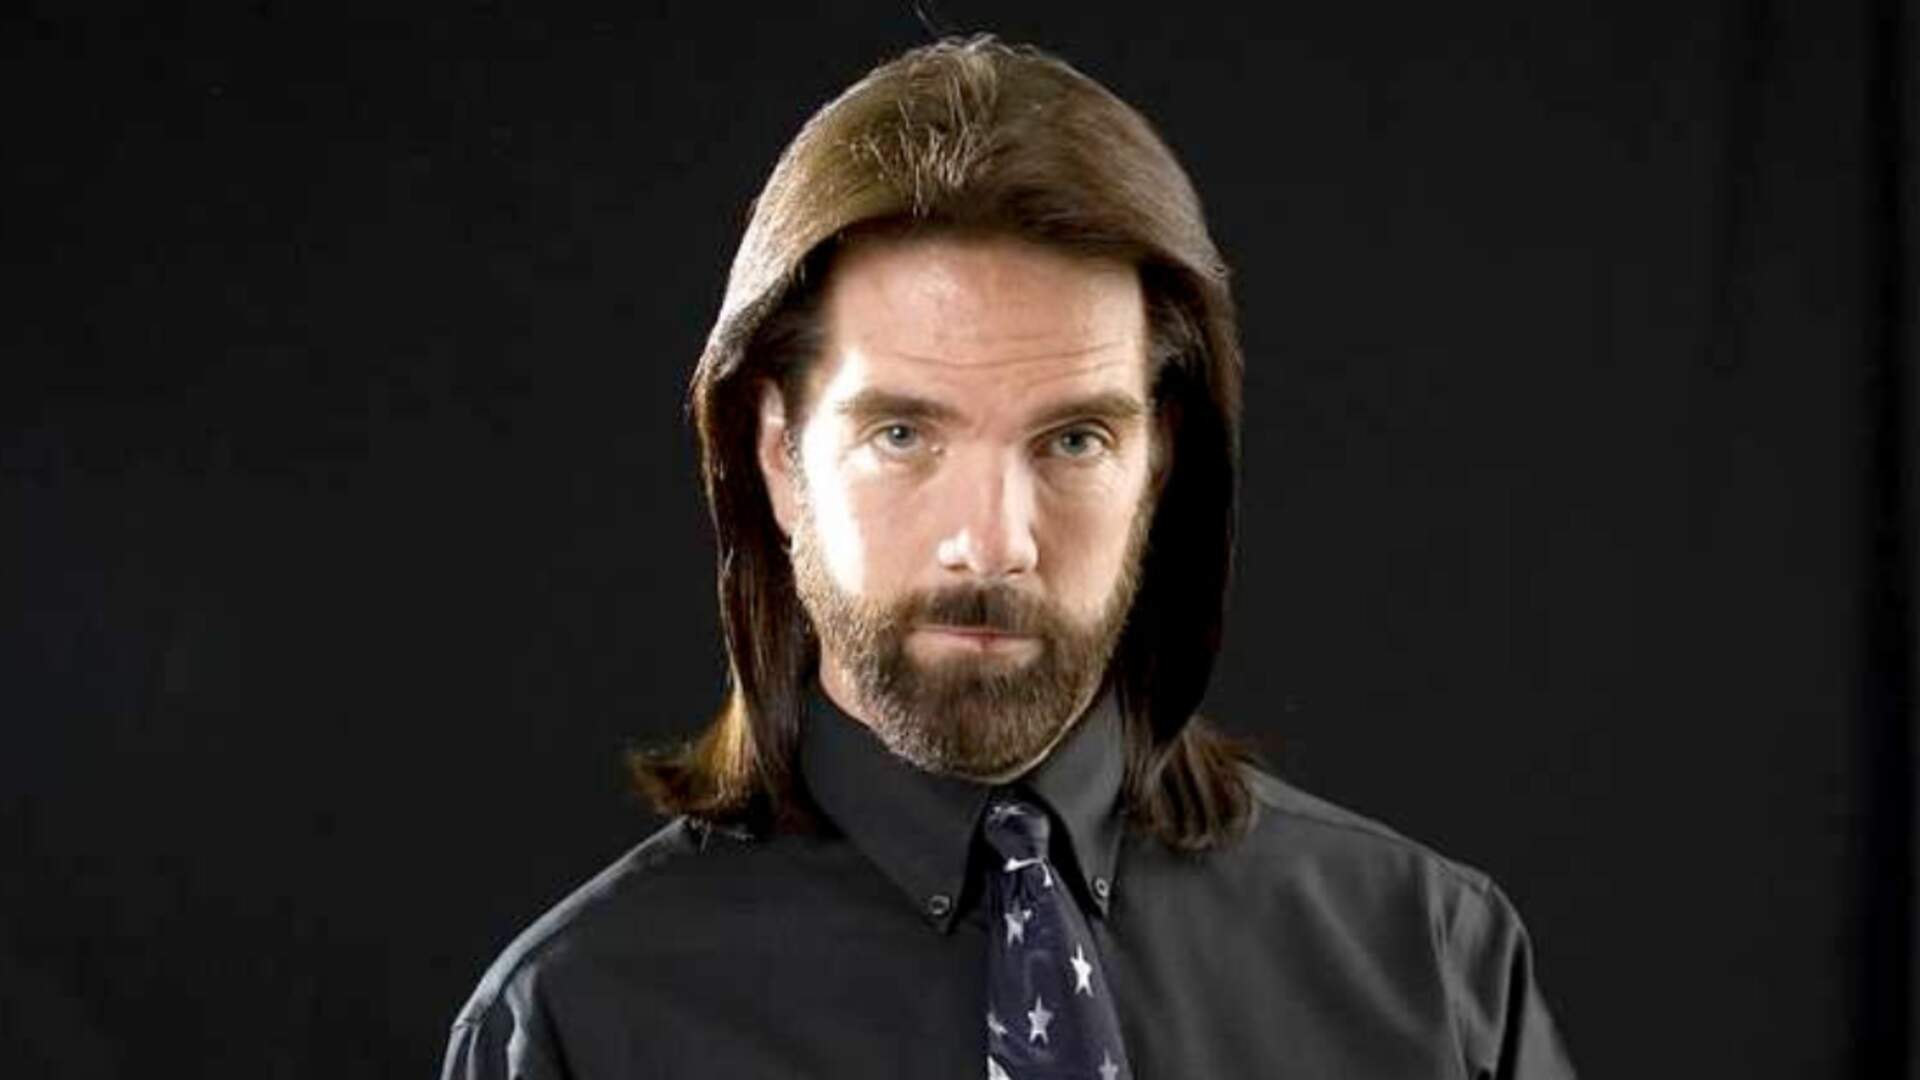 King of Kong Star Billy Mitchell Accused of Lying About World-Record Donkey Kong Runs